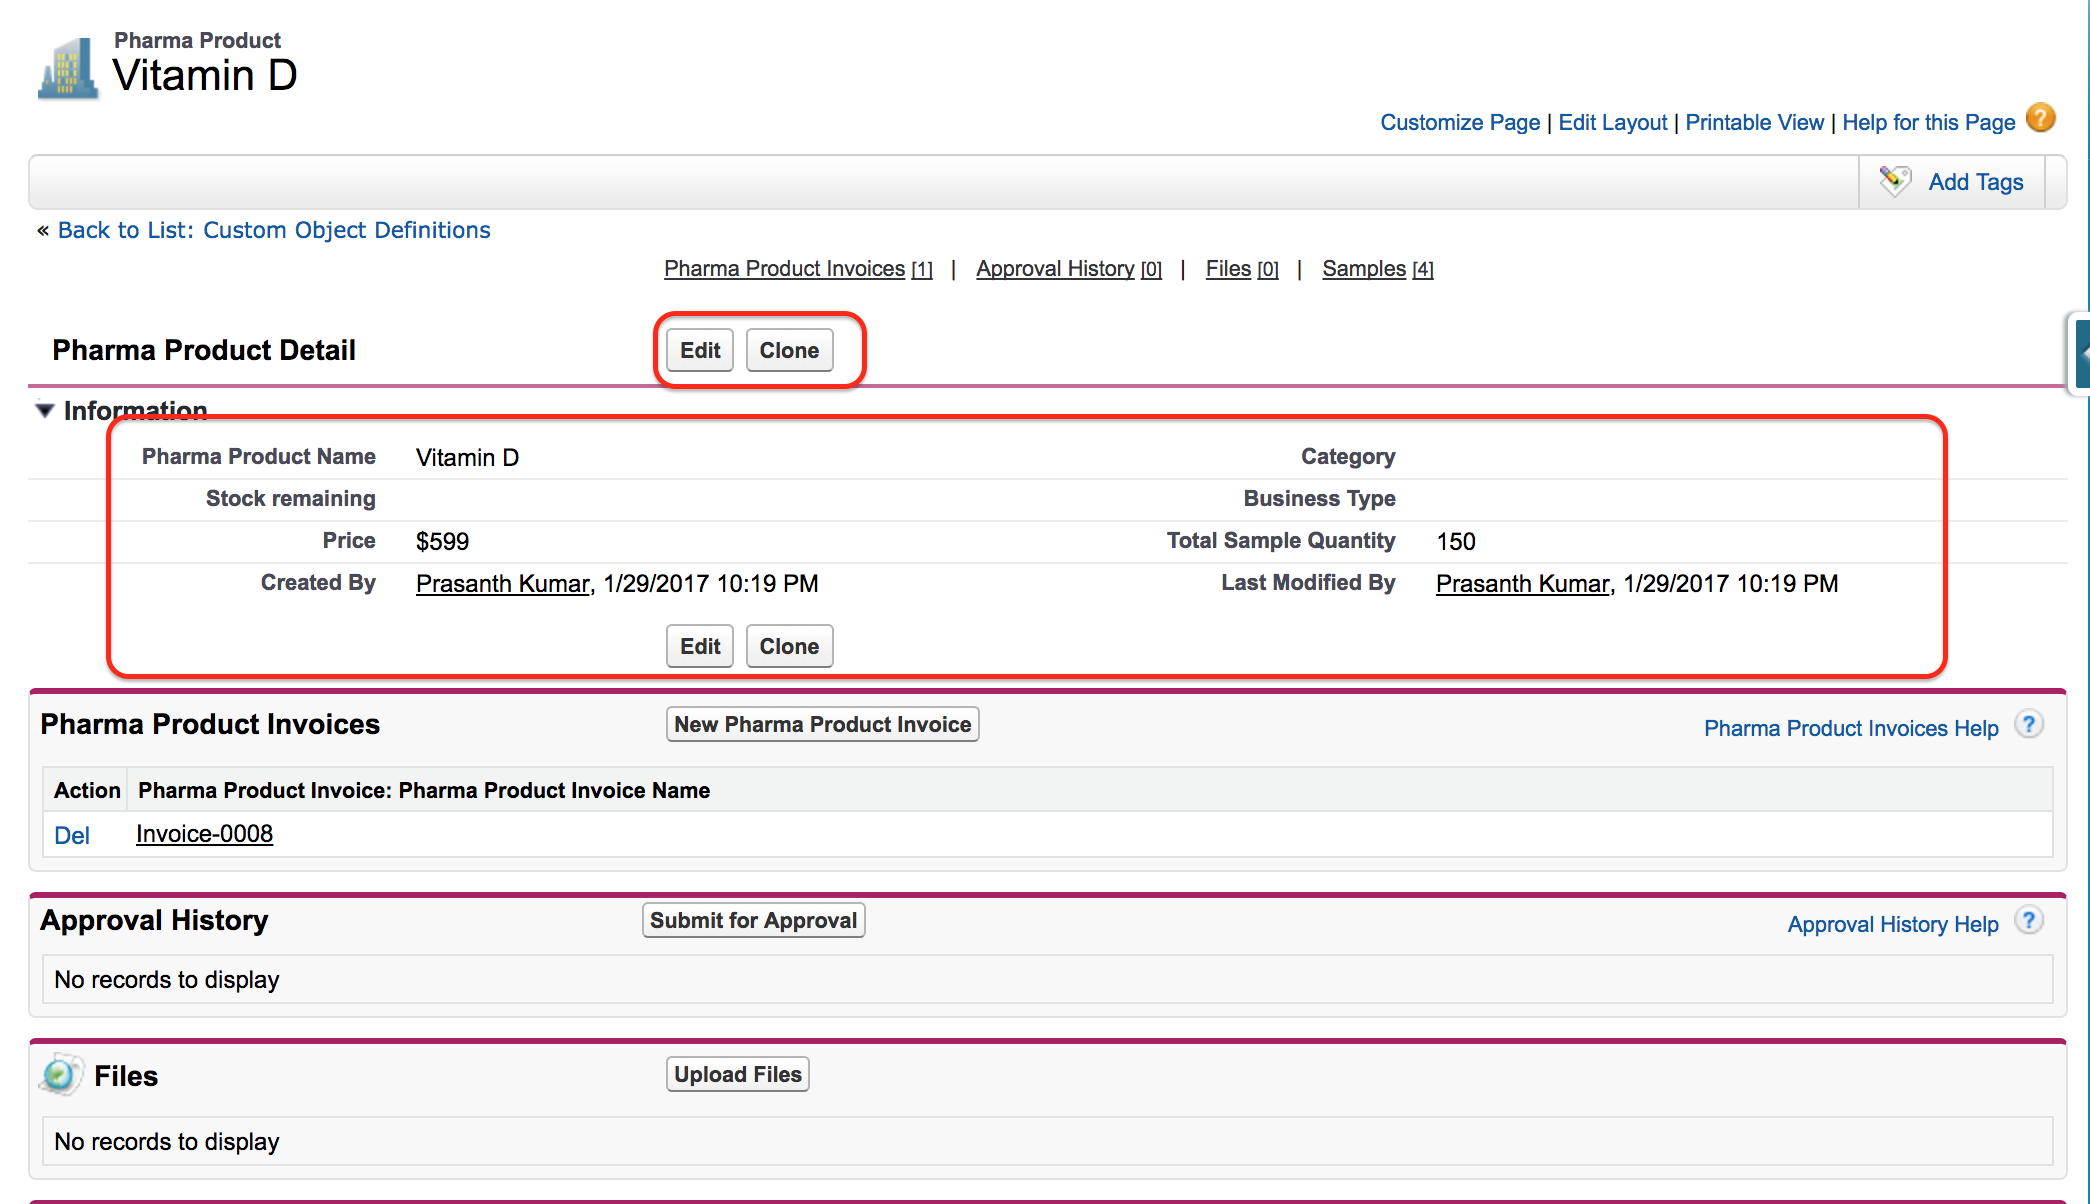 Custom page layouts in Salesforce.com